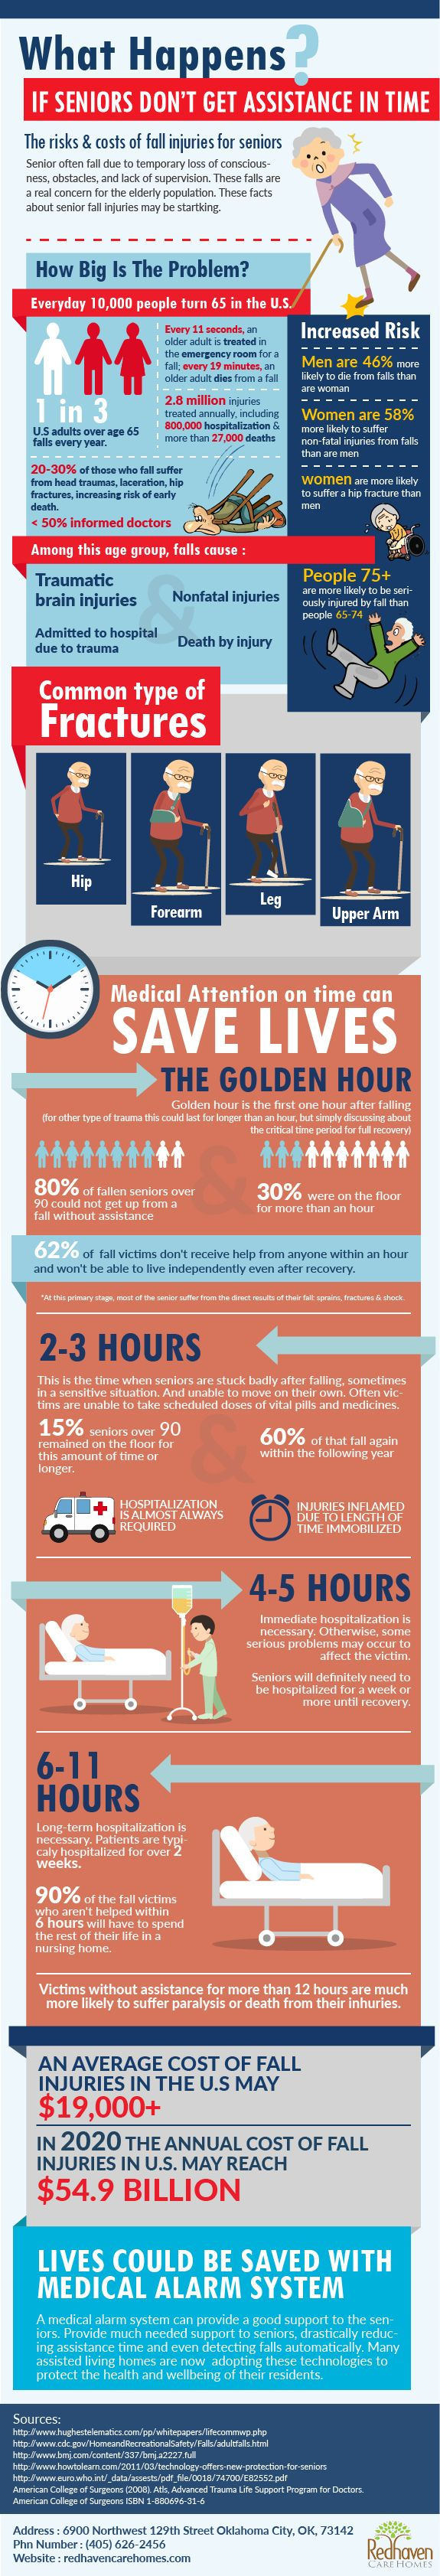 What Happens If Seniors Dont Get Assistance In Time ? #infographic http://bit.ly/2mvUxoF